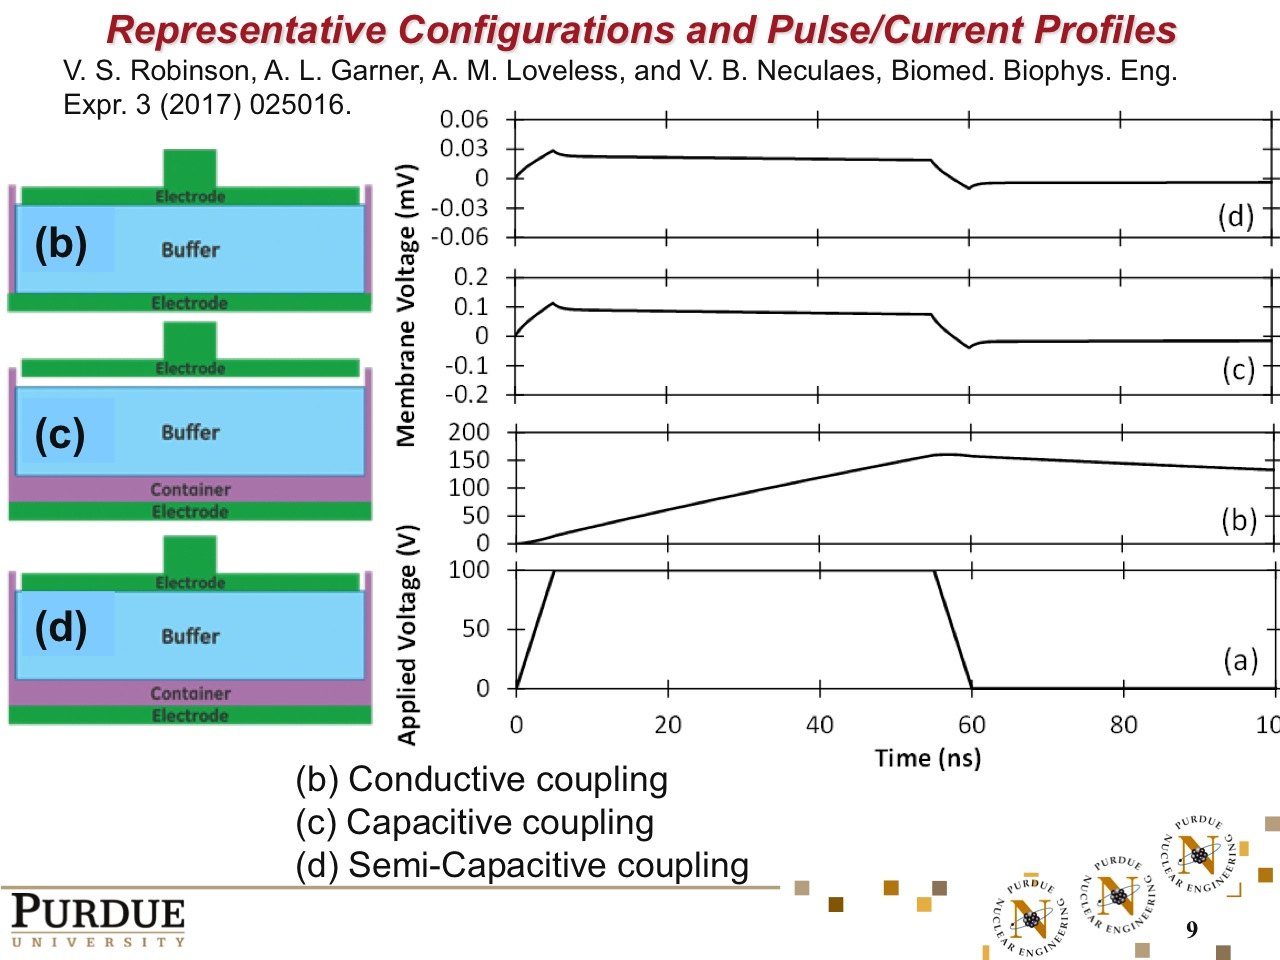 Representative Configurations and Pulse/Current Profiles